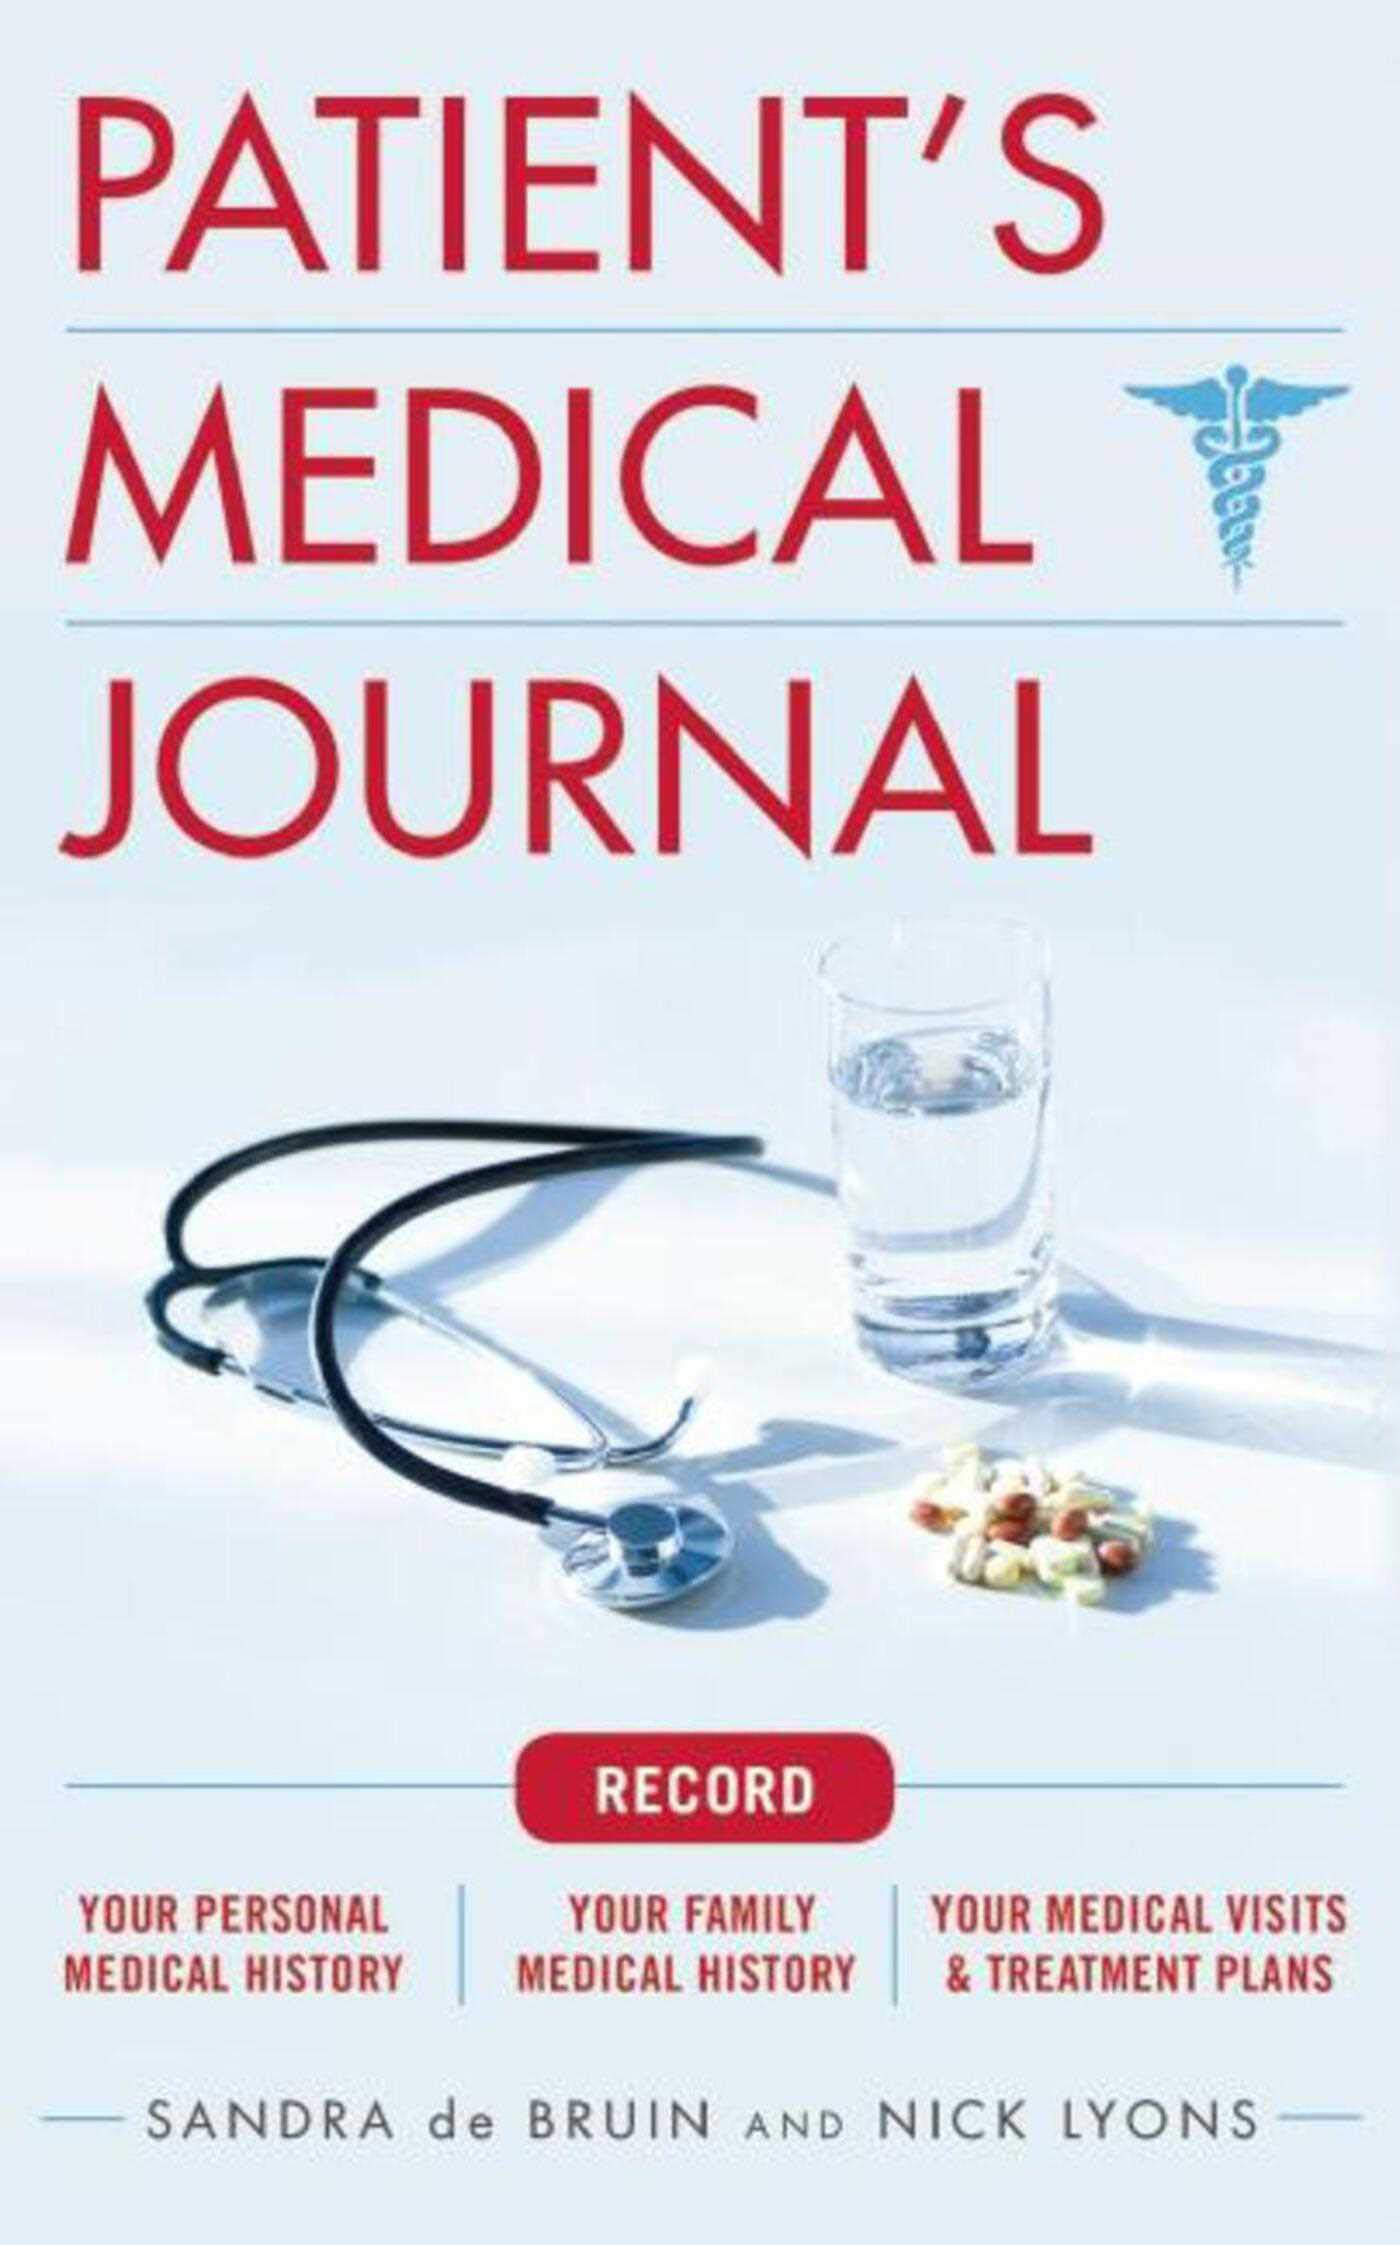 The Patient's Medical Journal: Record Your Personal Medical